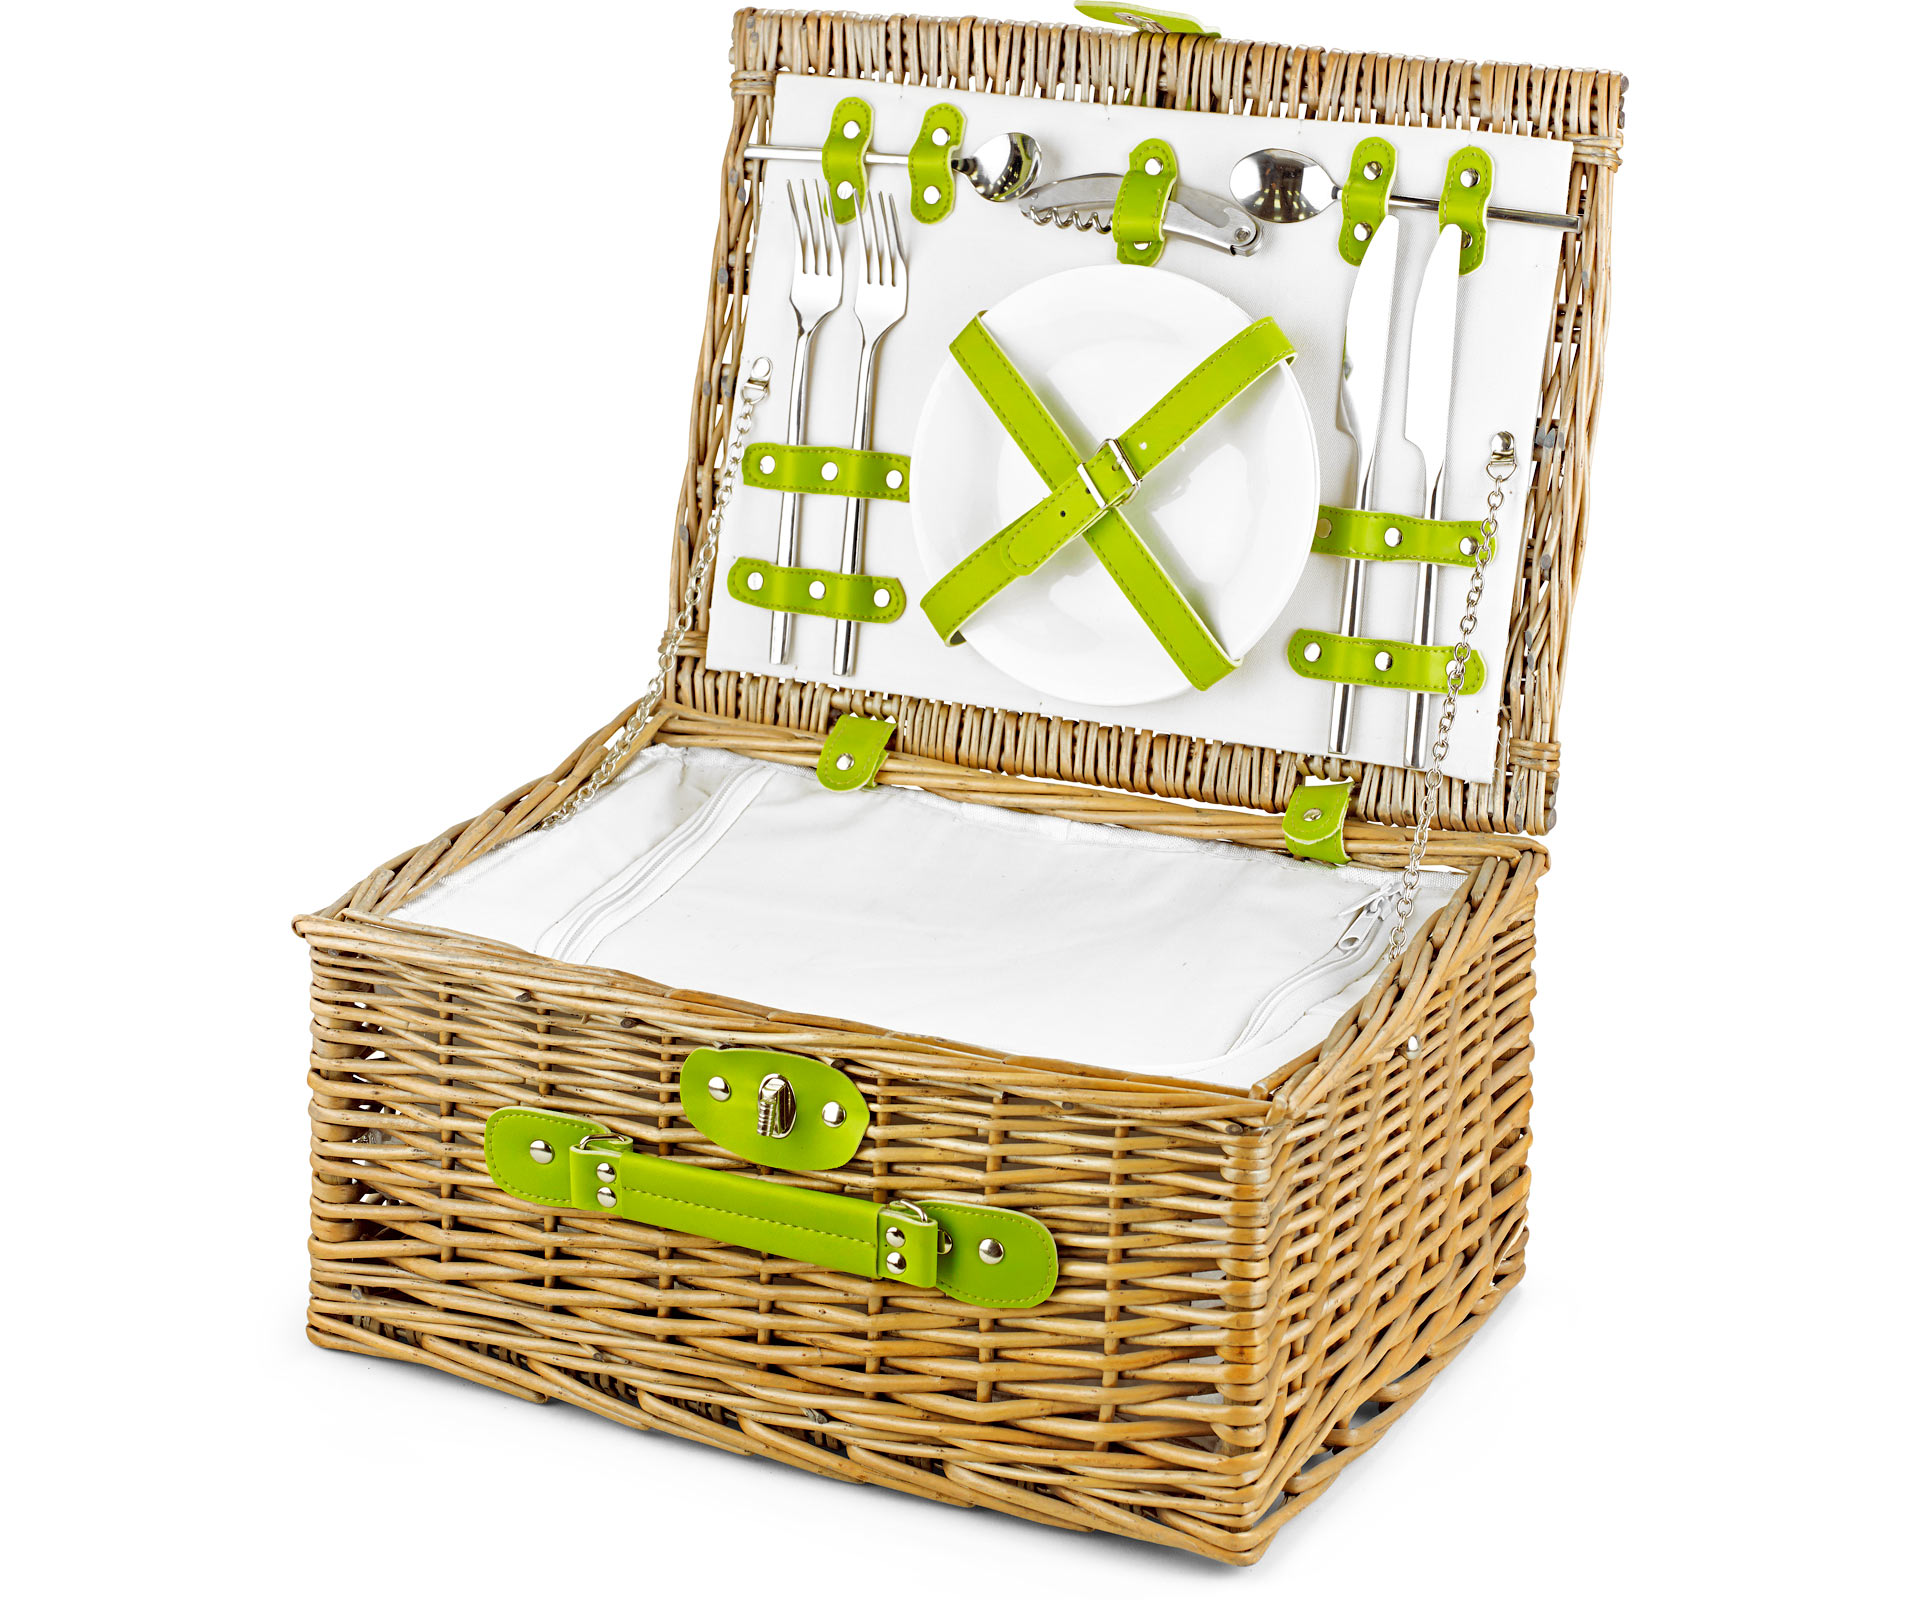 Optima Gordon 4 Person Tea Picnic Basket : Find every in the world selling gordon picnic basket